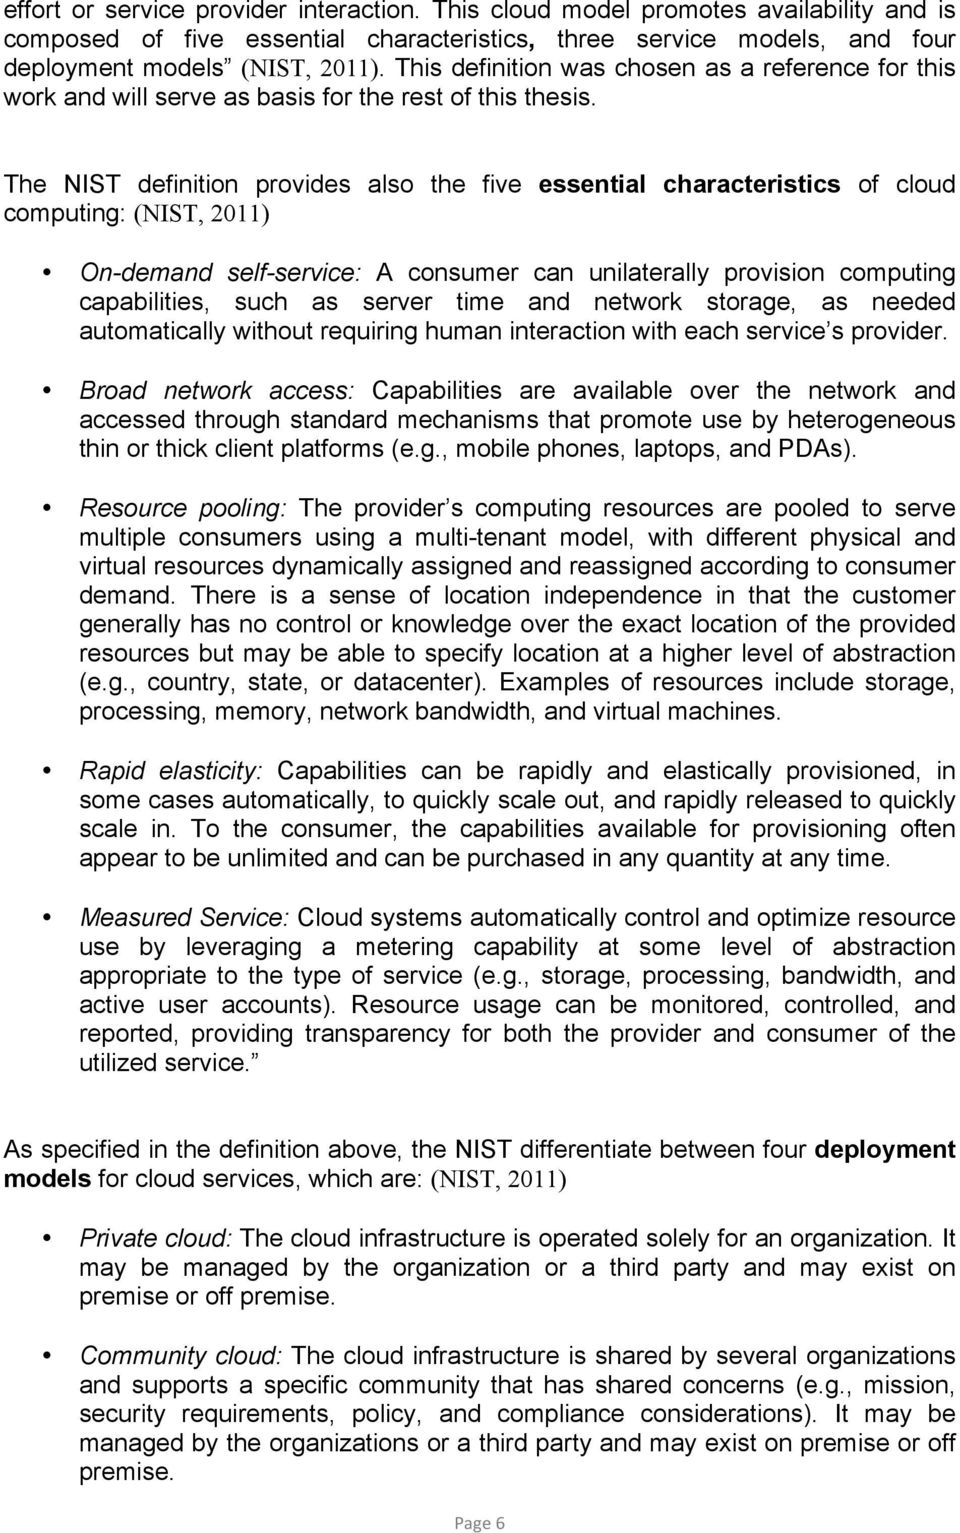 The NIST definition provides also the five essential characteristics of cloud computing: (NIST, 2011) On-demand self-service: A consumer can unilaterally provision computing capabilities, such as